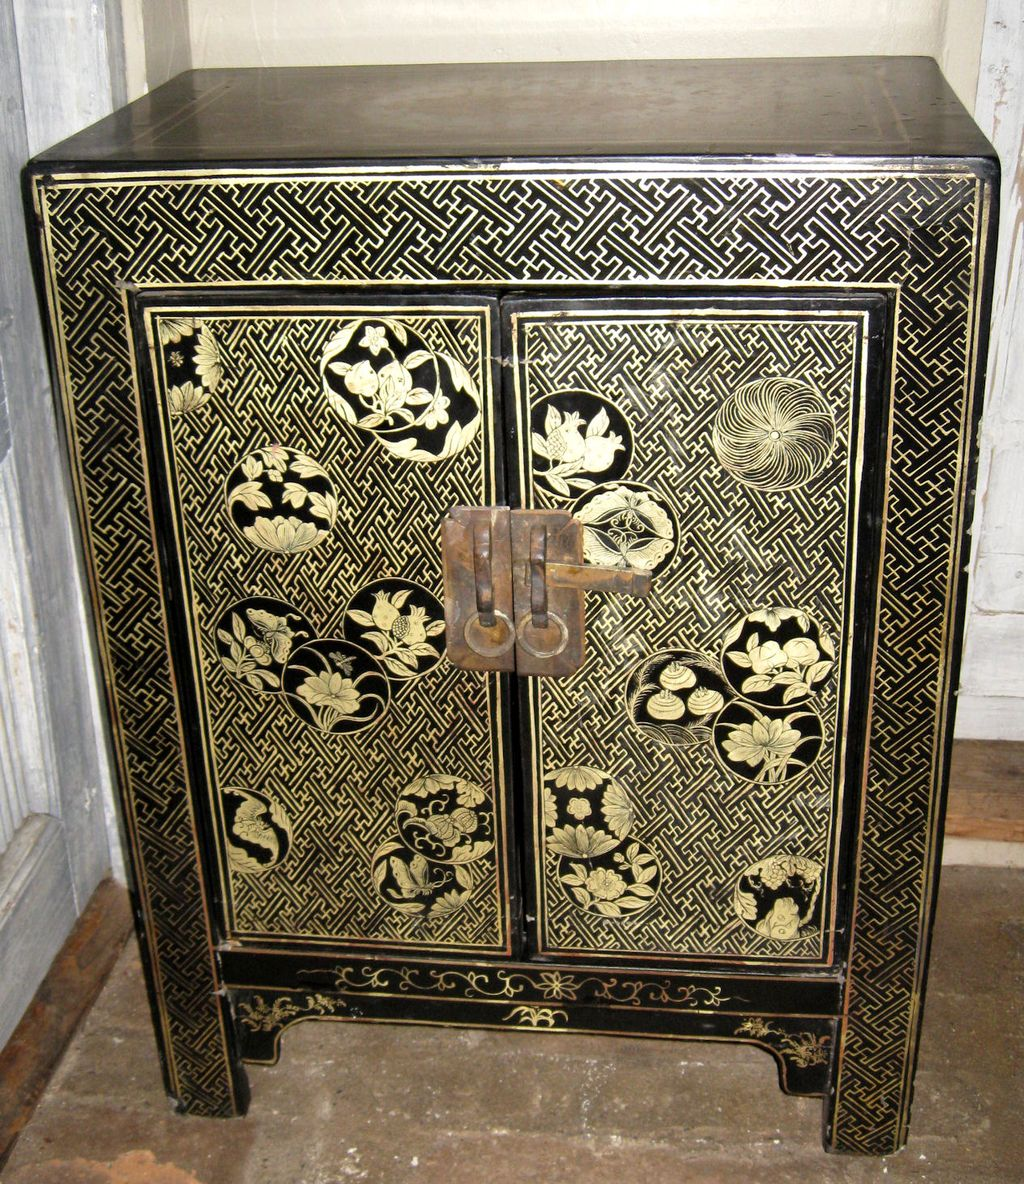 CHINESE ANTIQUE GILT PAINTED WOOD CARVING ELDER